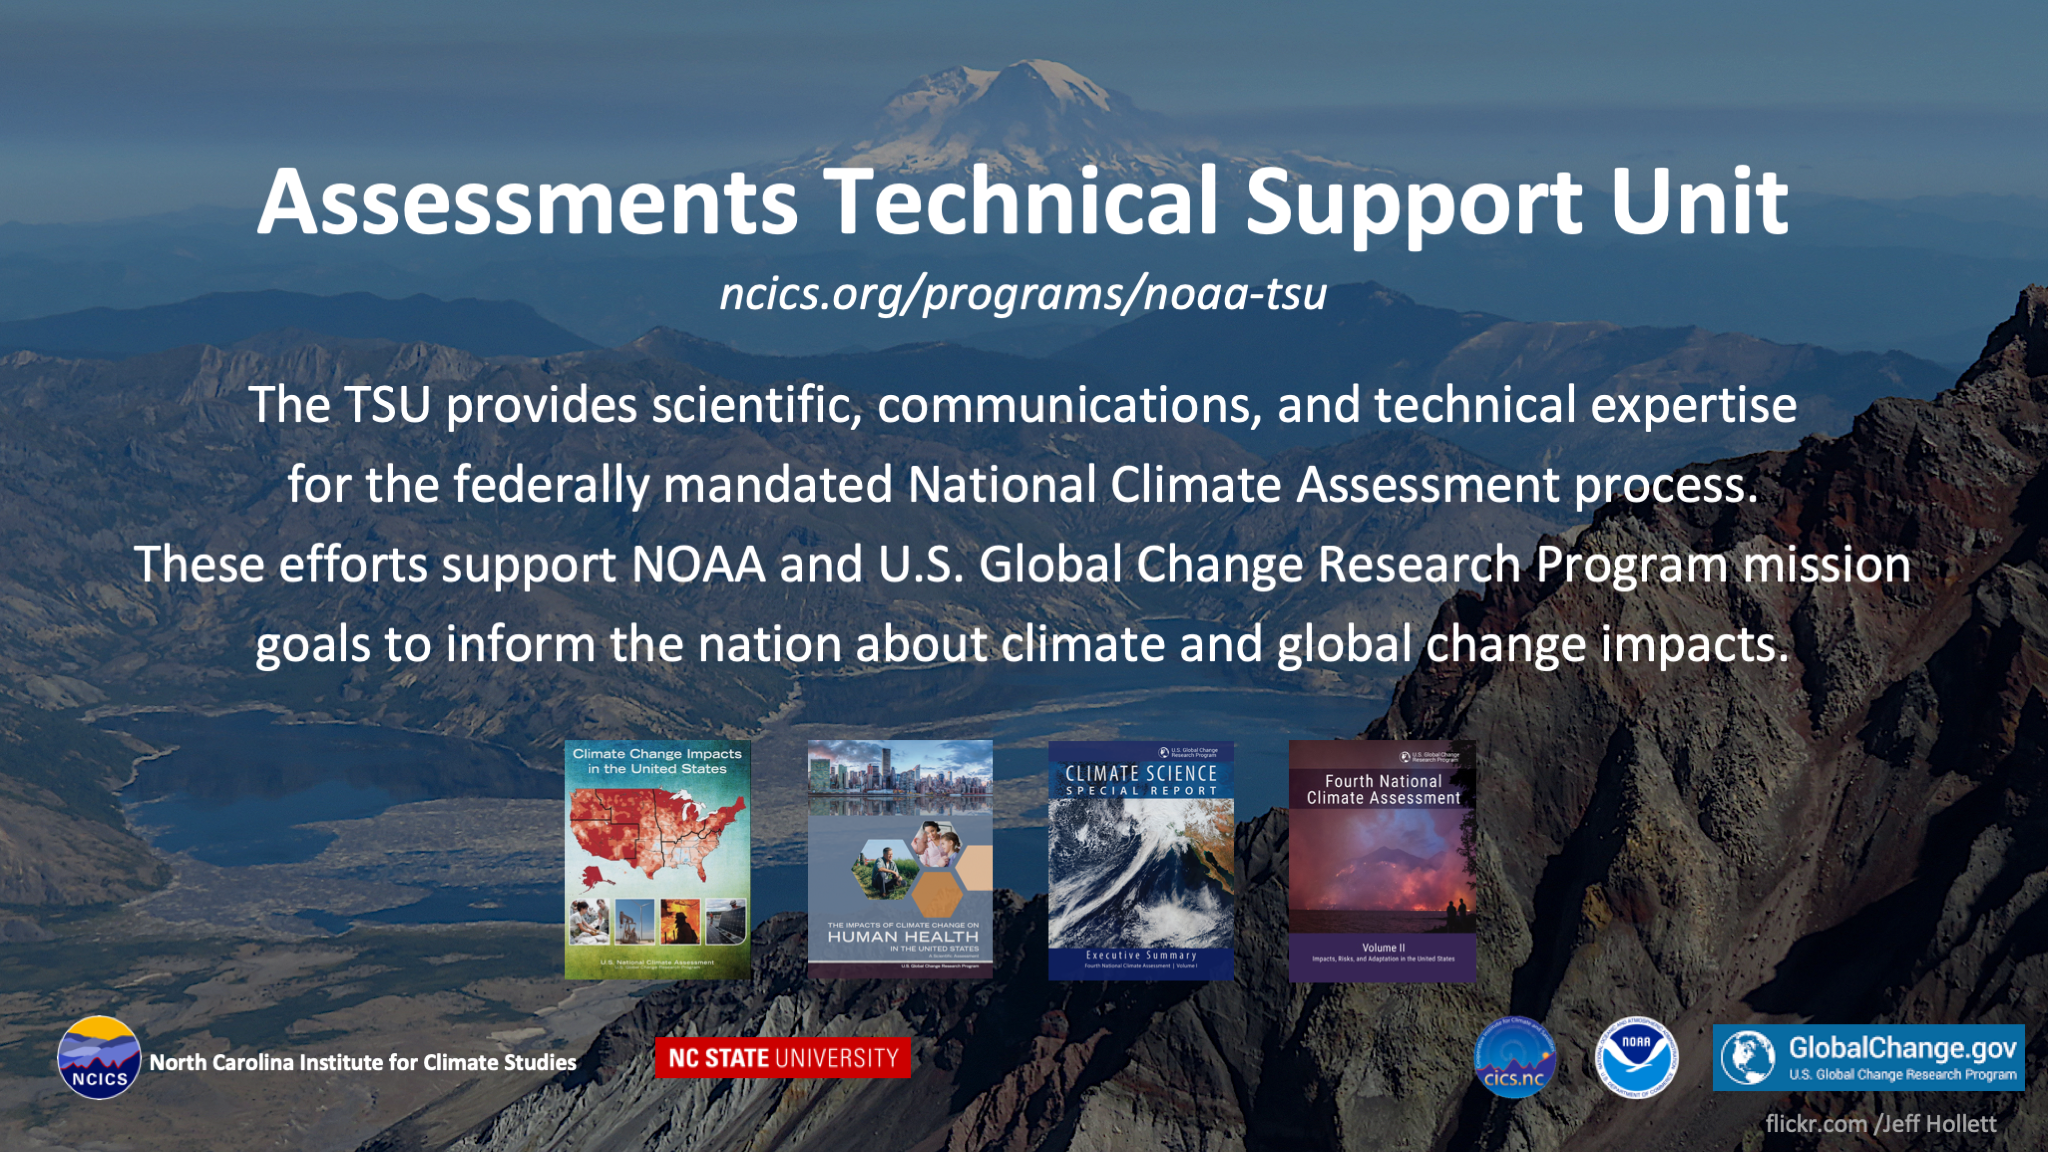 Assessments Technical Support Unit